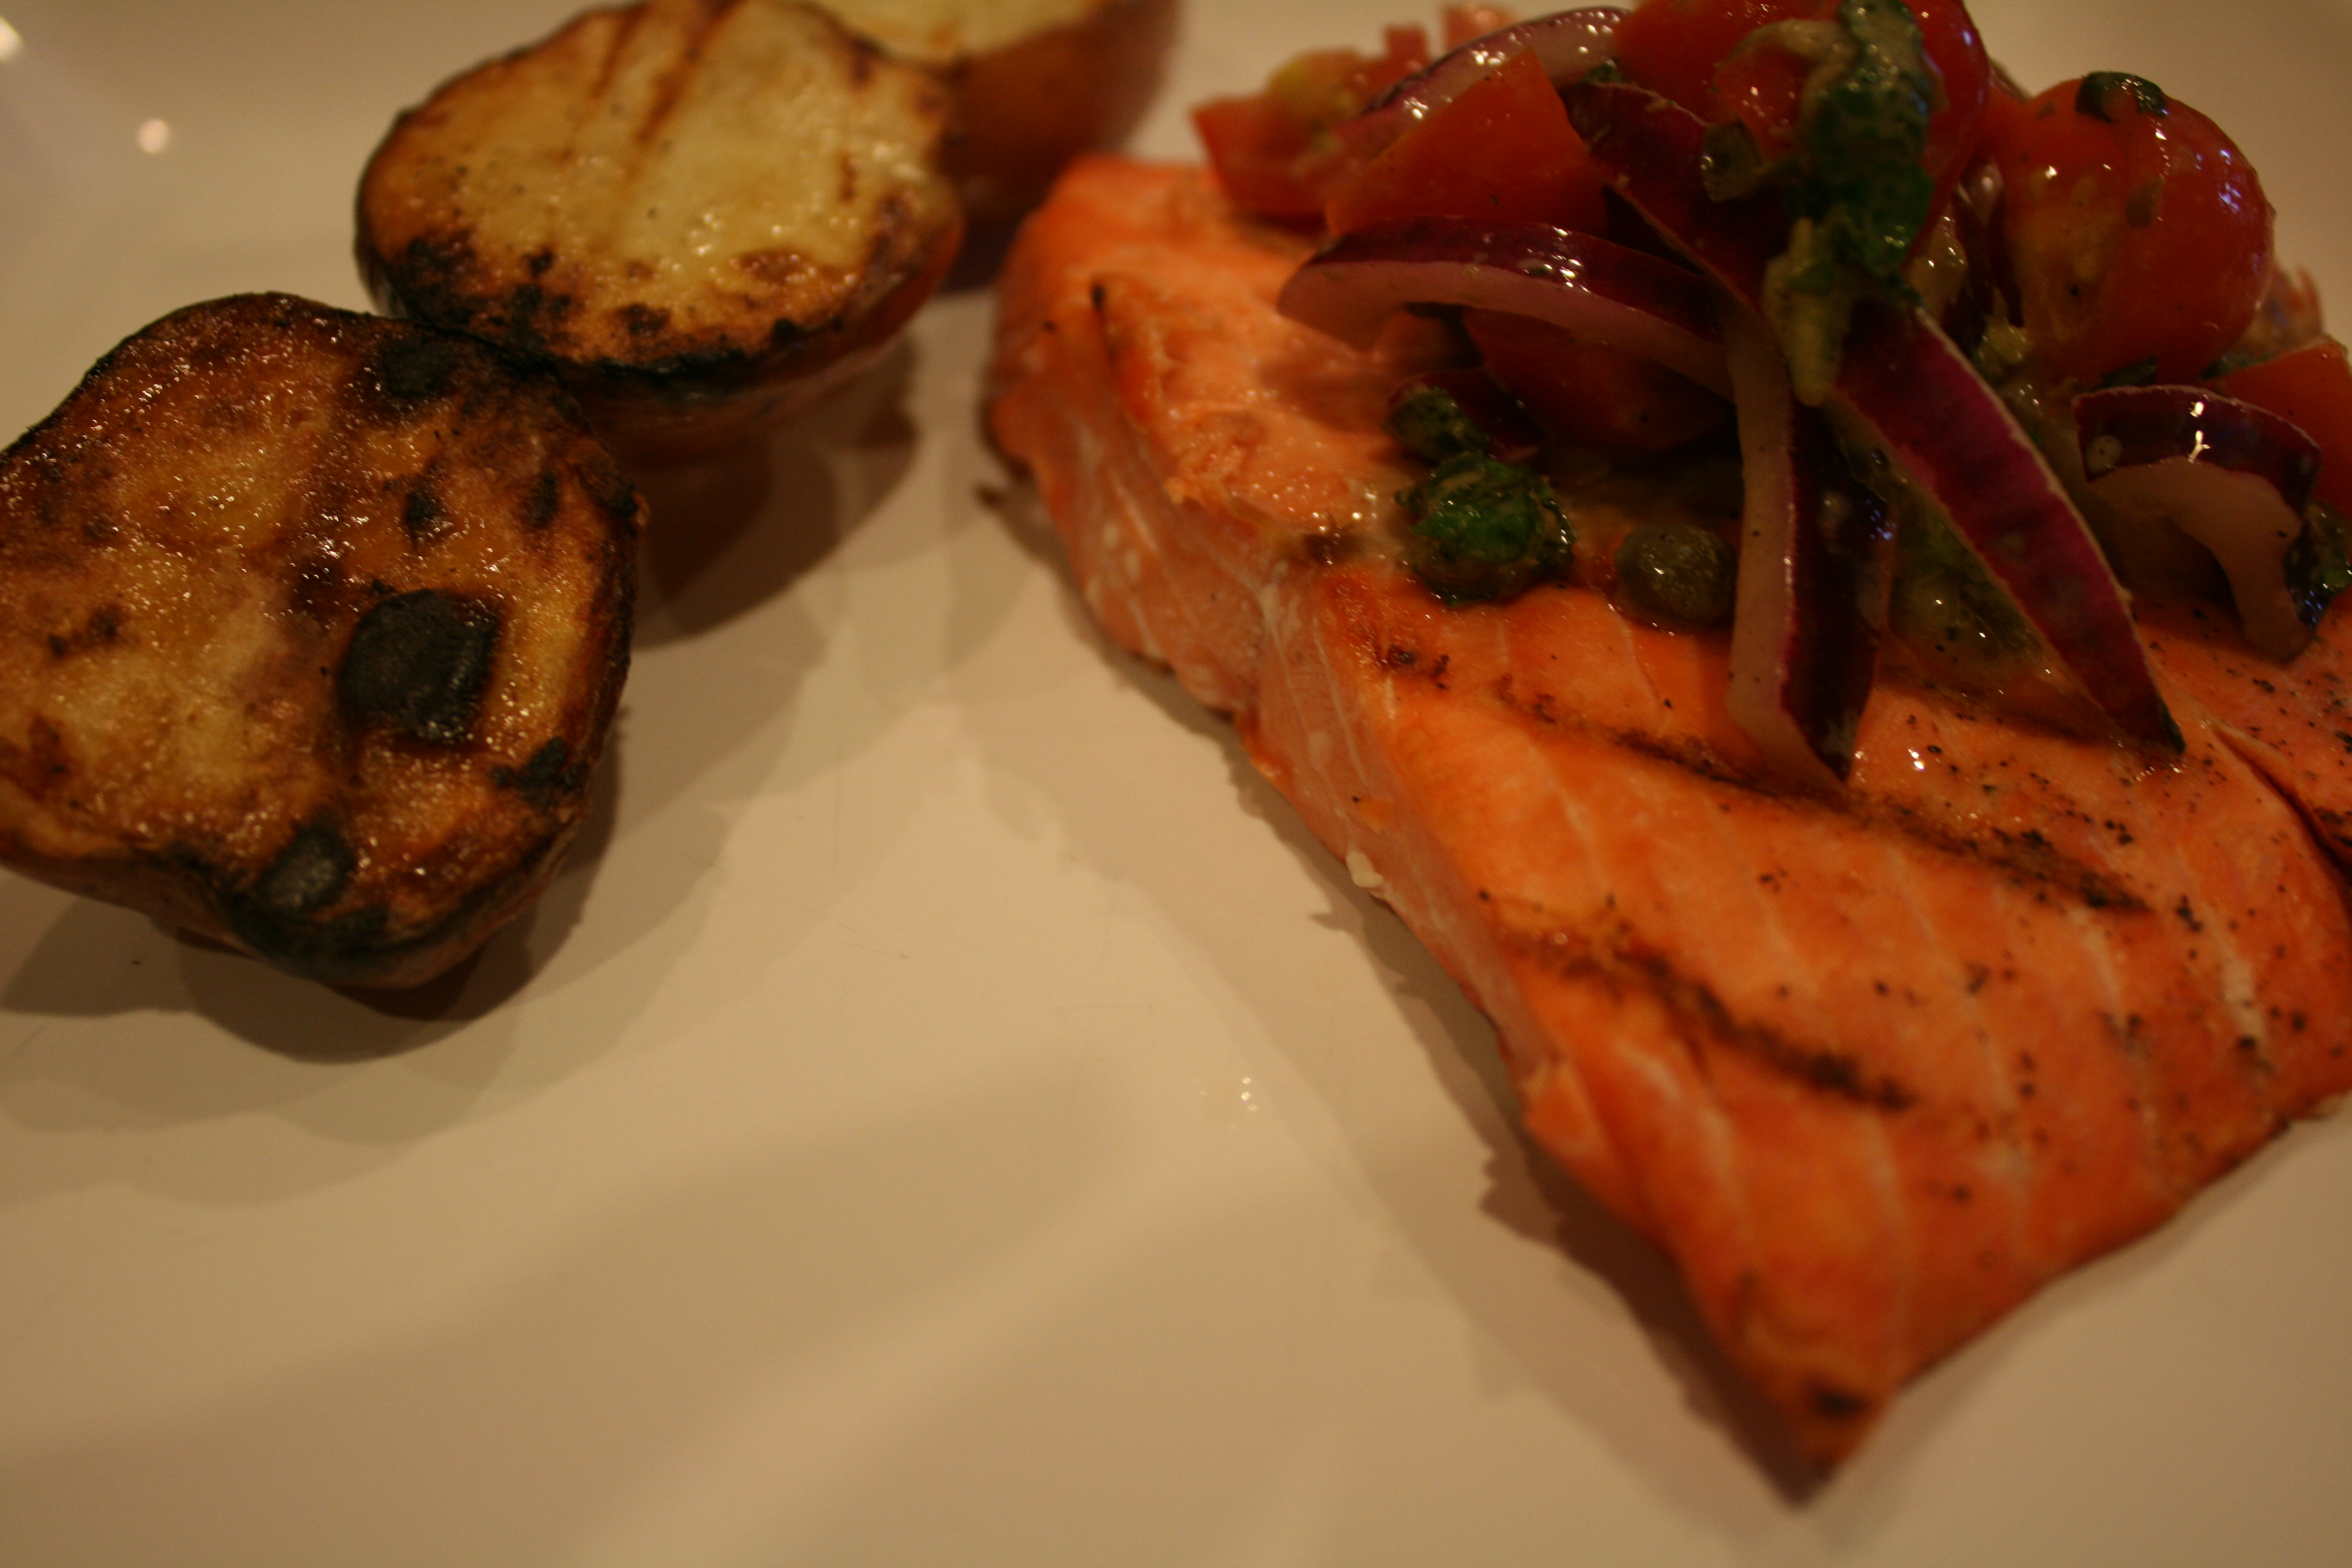 Grilled Salmon with Yukon Golds and Tomato-Red Onion Relish - BigOven